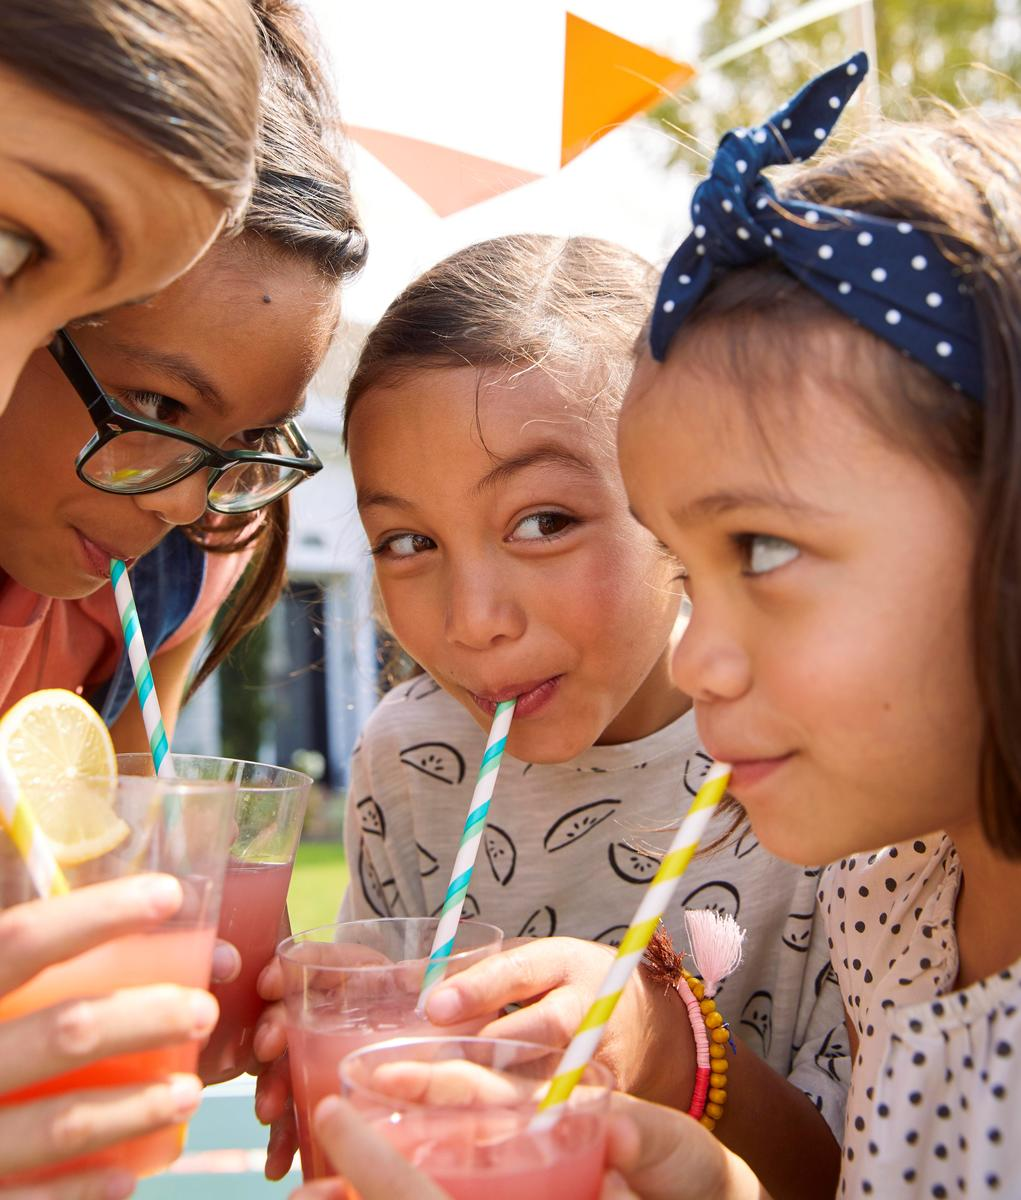 Kids Young Girls Drinking Lemonade Watermelon Flavor From Straw